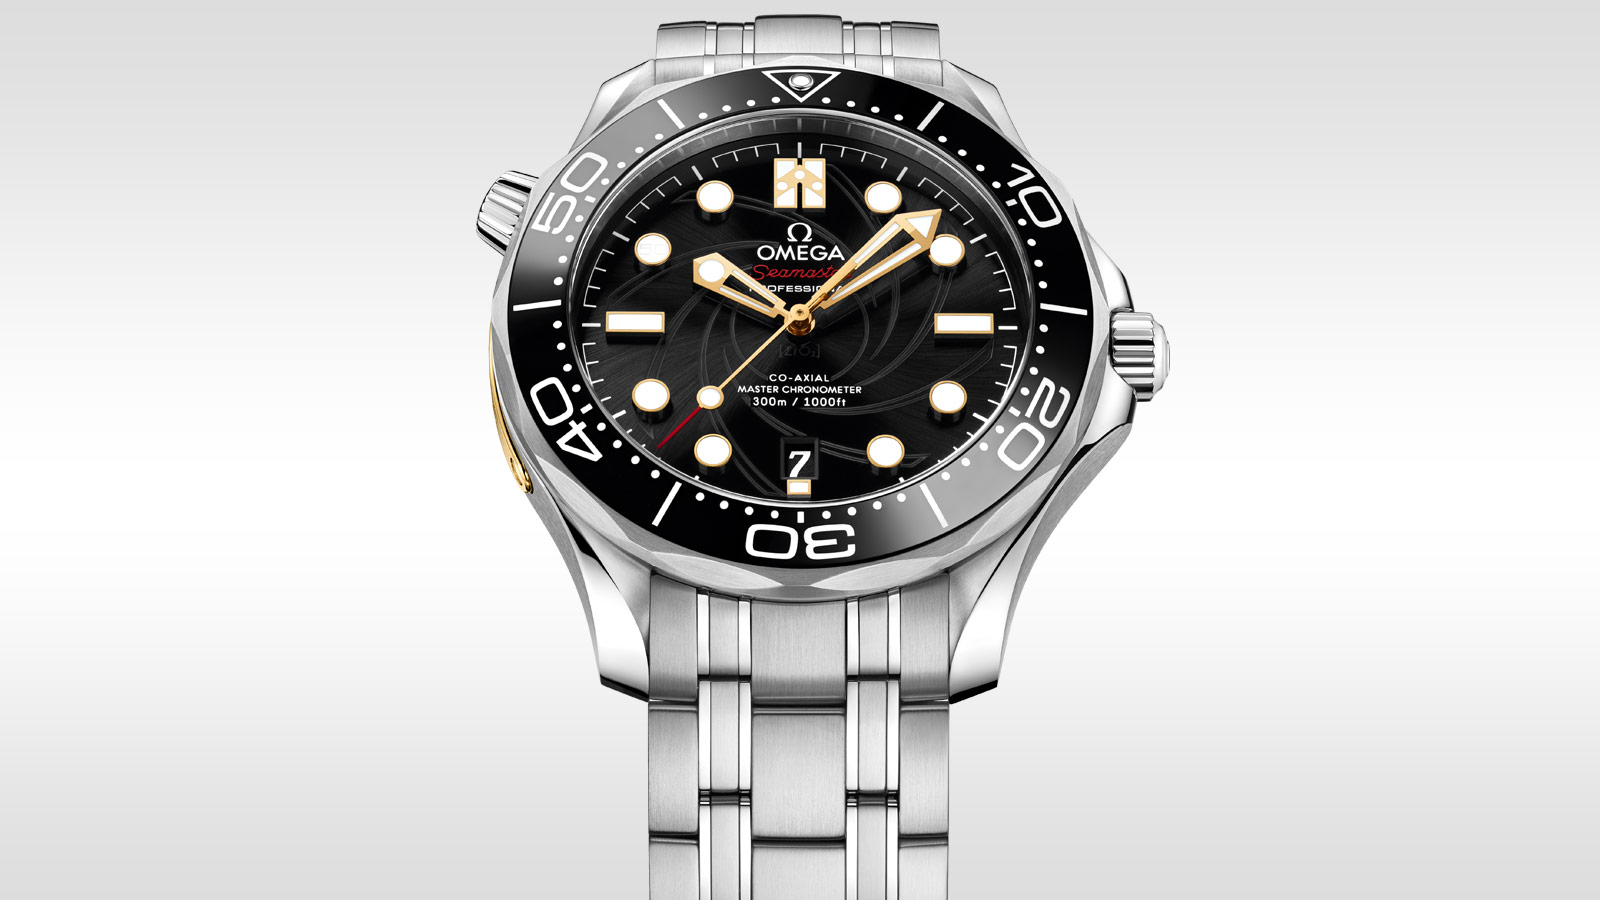 Seamaster Diver 300M Diver 300M Omega Co‑Axial Master Chronometer 42 mm - 210.22.42.20.01.004 - Vista 6